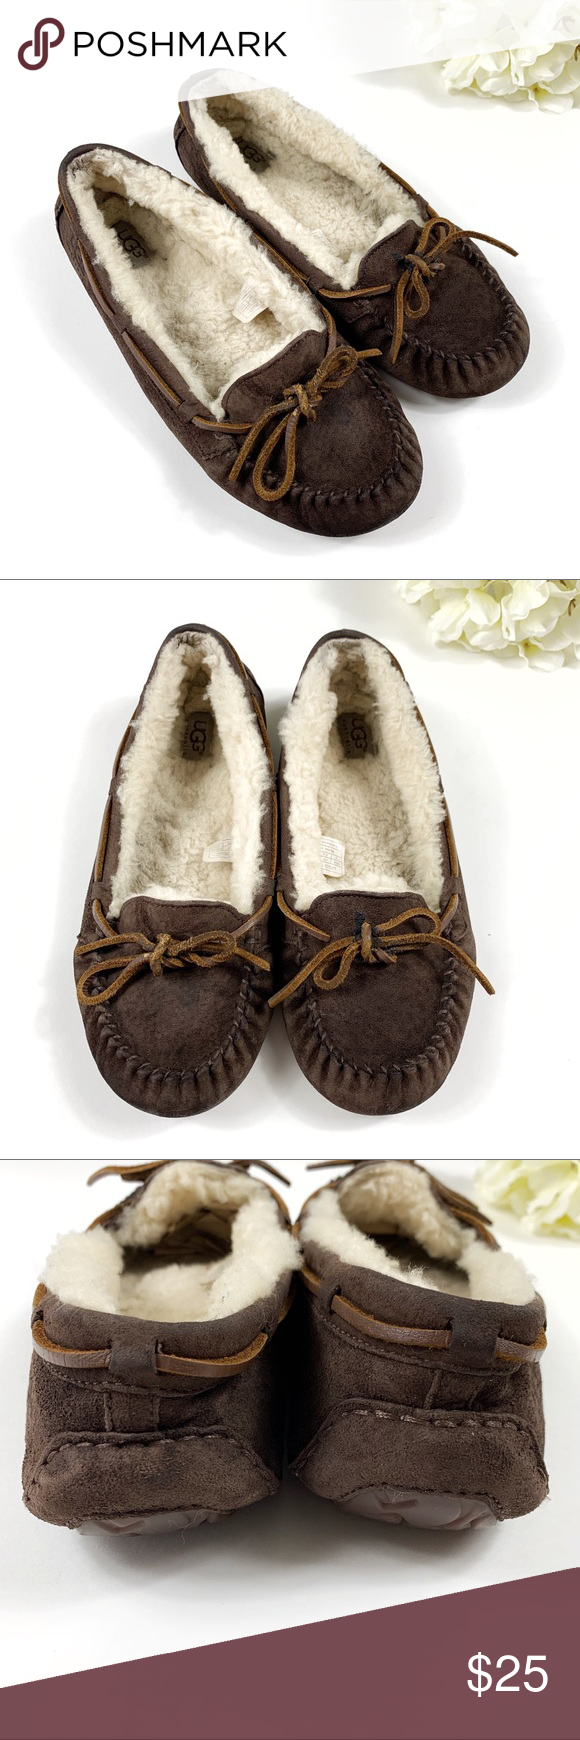 6a07b0d3bf8b Ugg Dakota Slippers in Espresso - Size 9 Ugg Dakota Slipper Moccasins -  Espresso Brown color with cream color fur inside - Women s Size 9 -  Preowned  Good ...